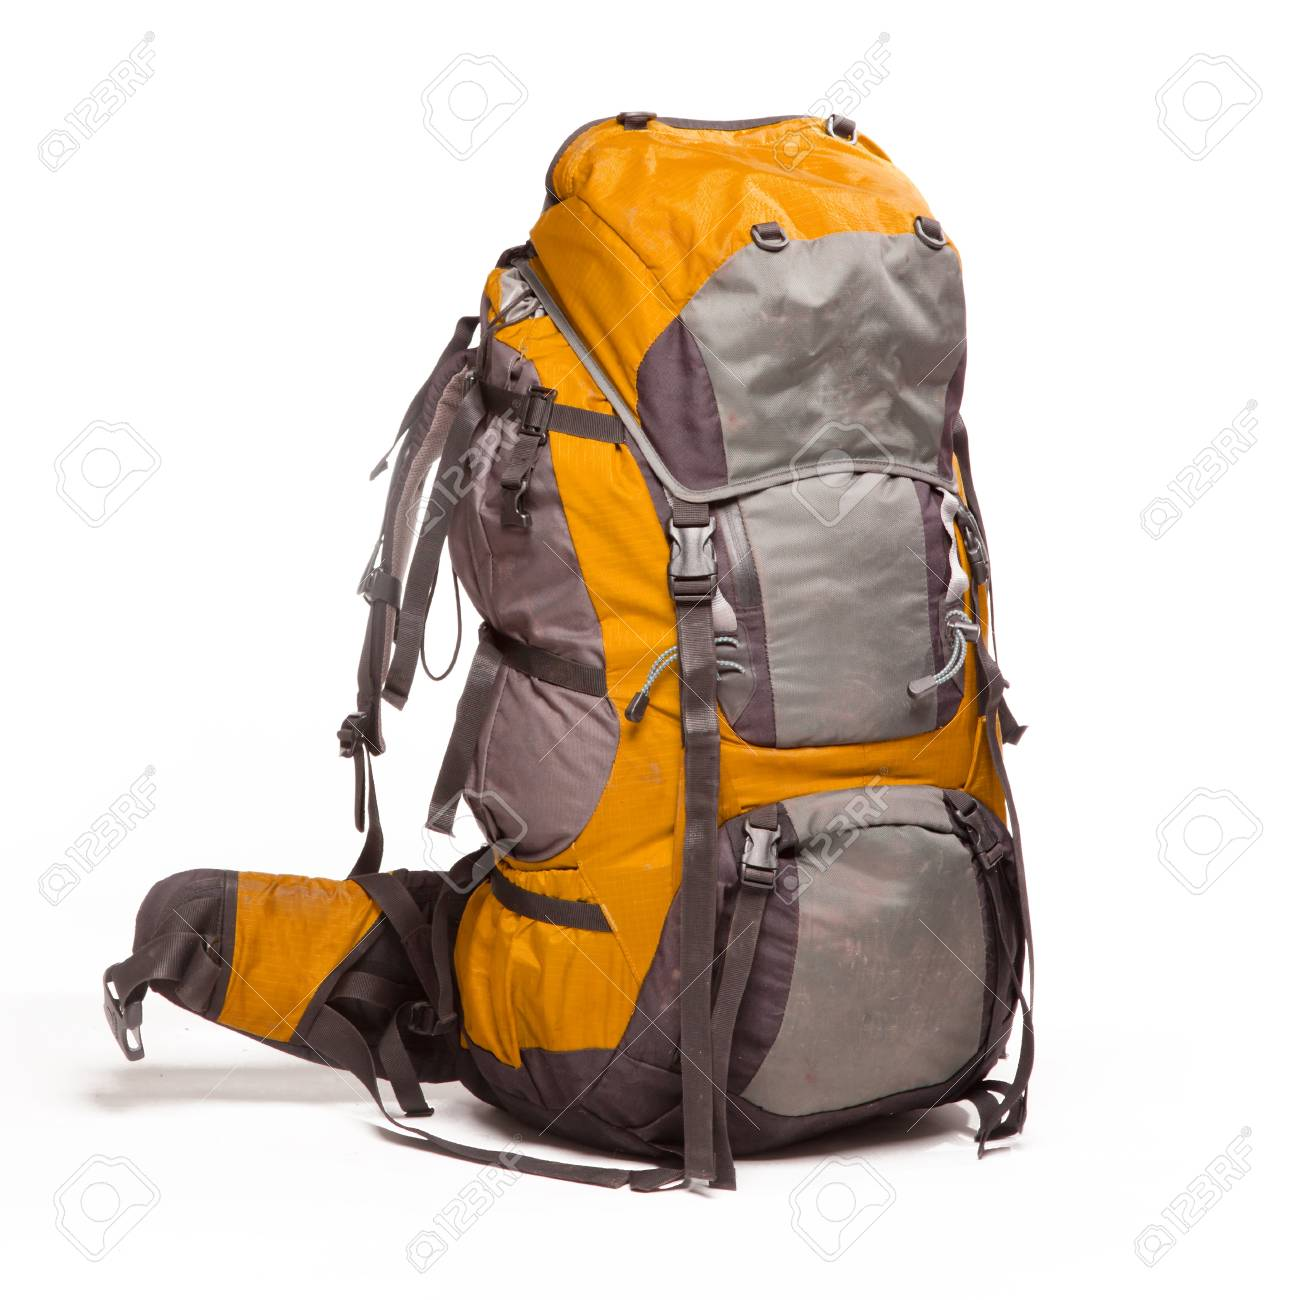 Tourist backpack on white background Stock Photo - 18671596 56b73bcb941a5